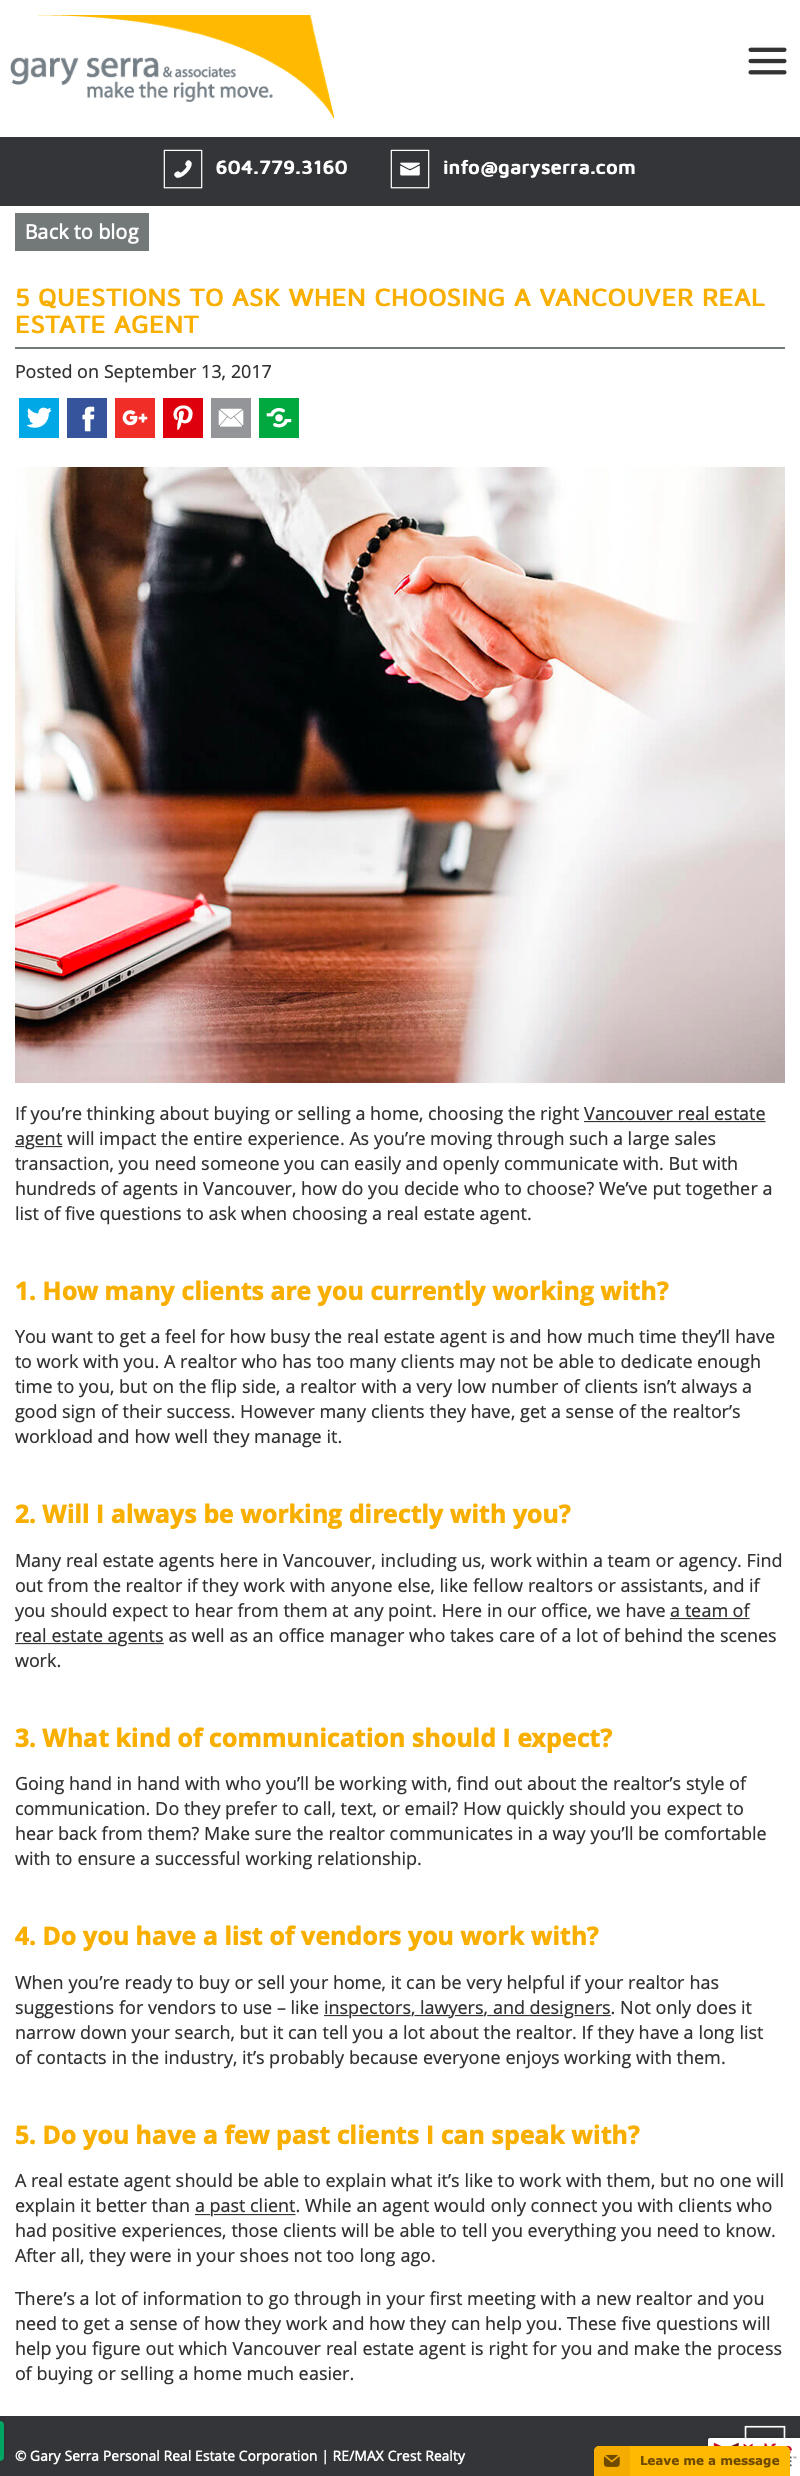 5 Questions to Ask When Choosing a Real Estate Agent